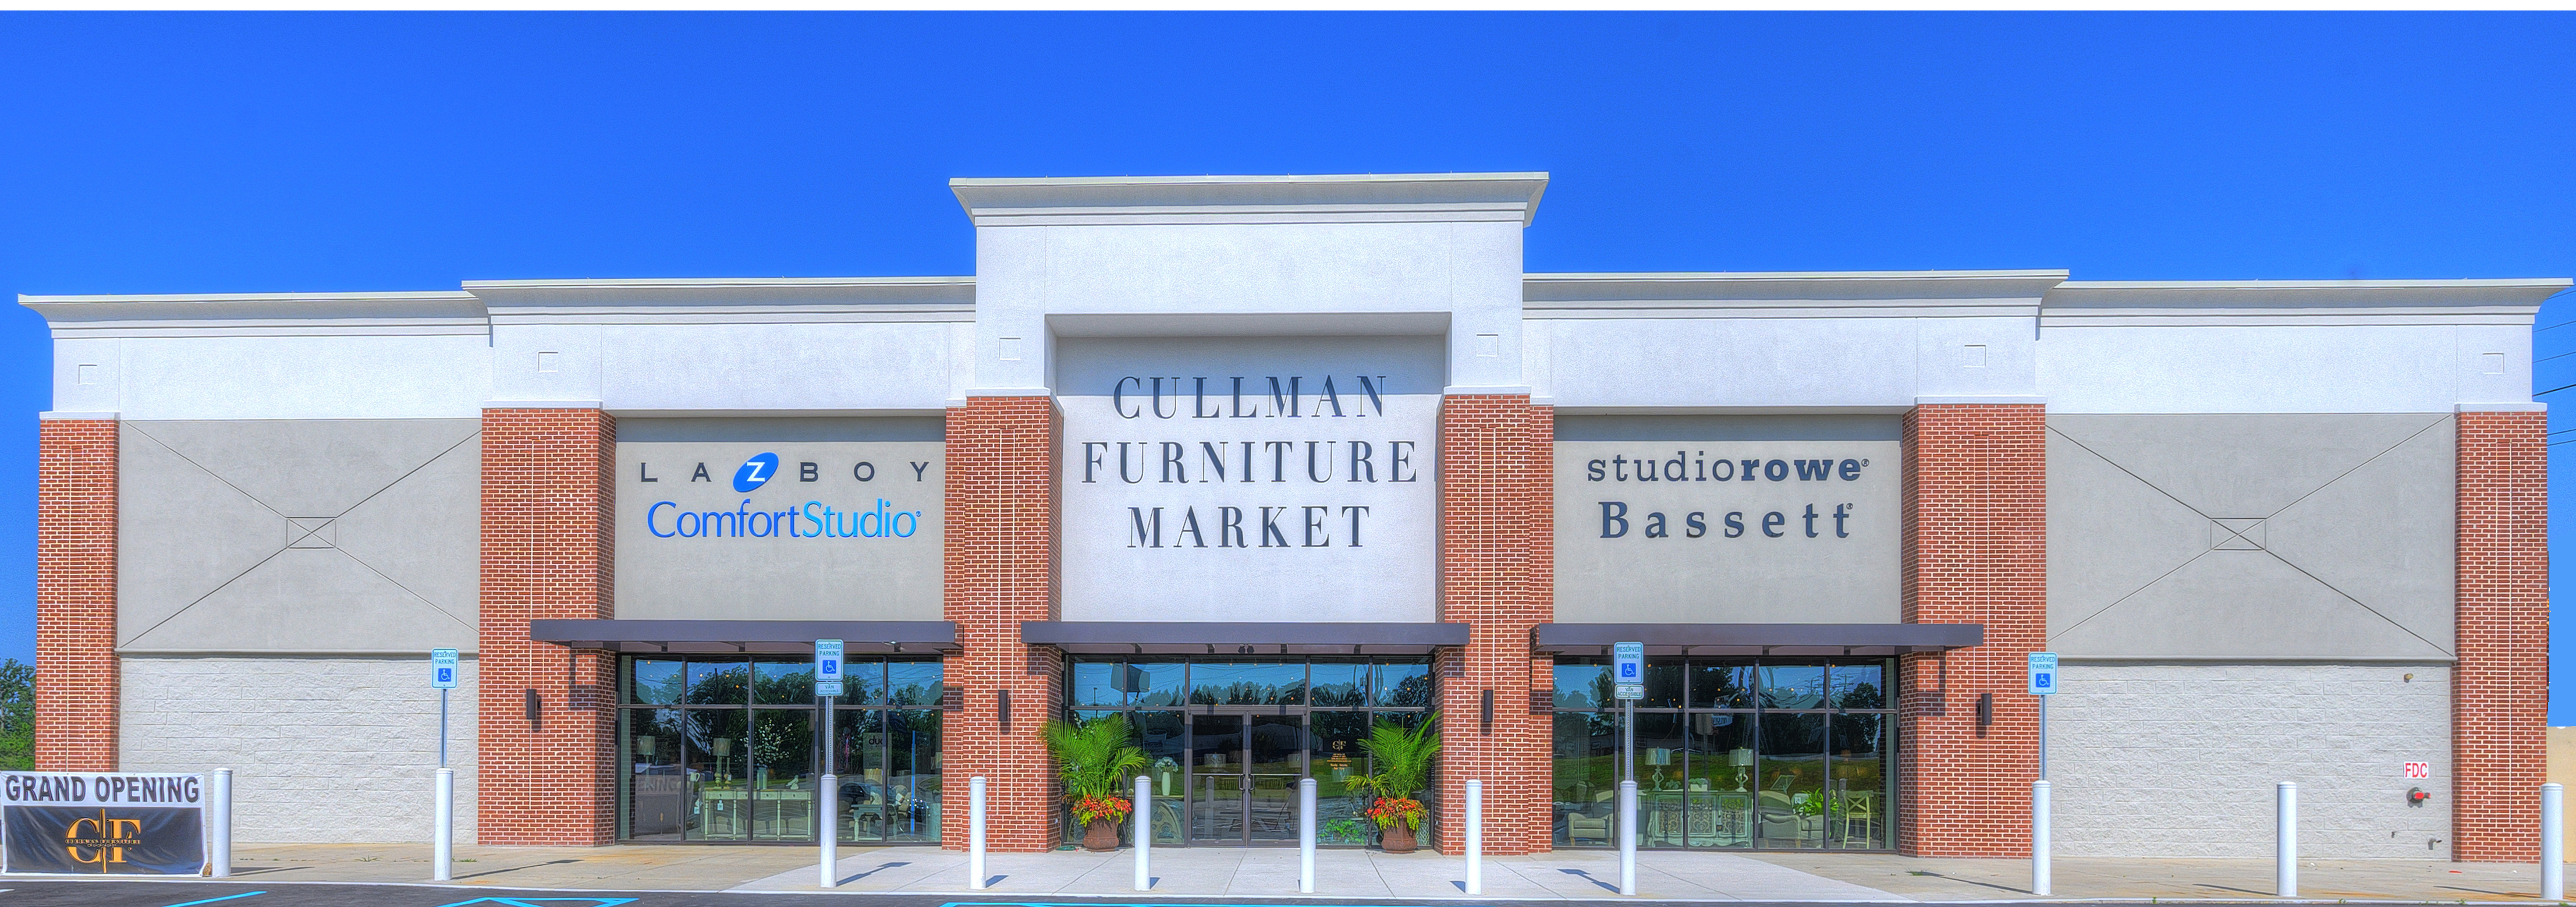 Cullman Furniture Market Reviews Furniture Stores At 1807 2nd Ave Sw Cullman Al